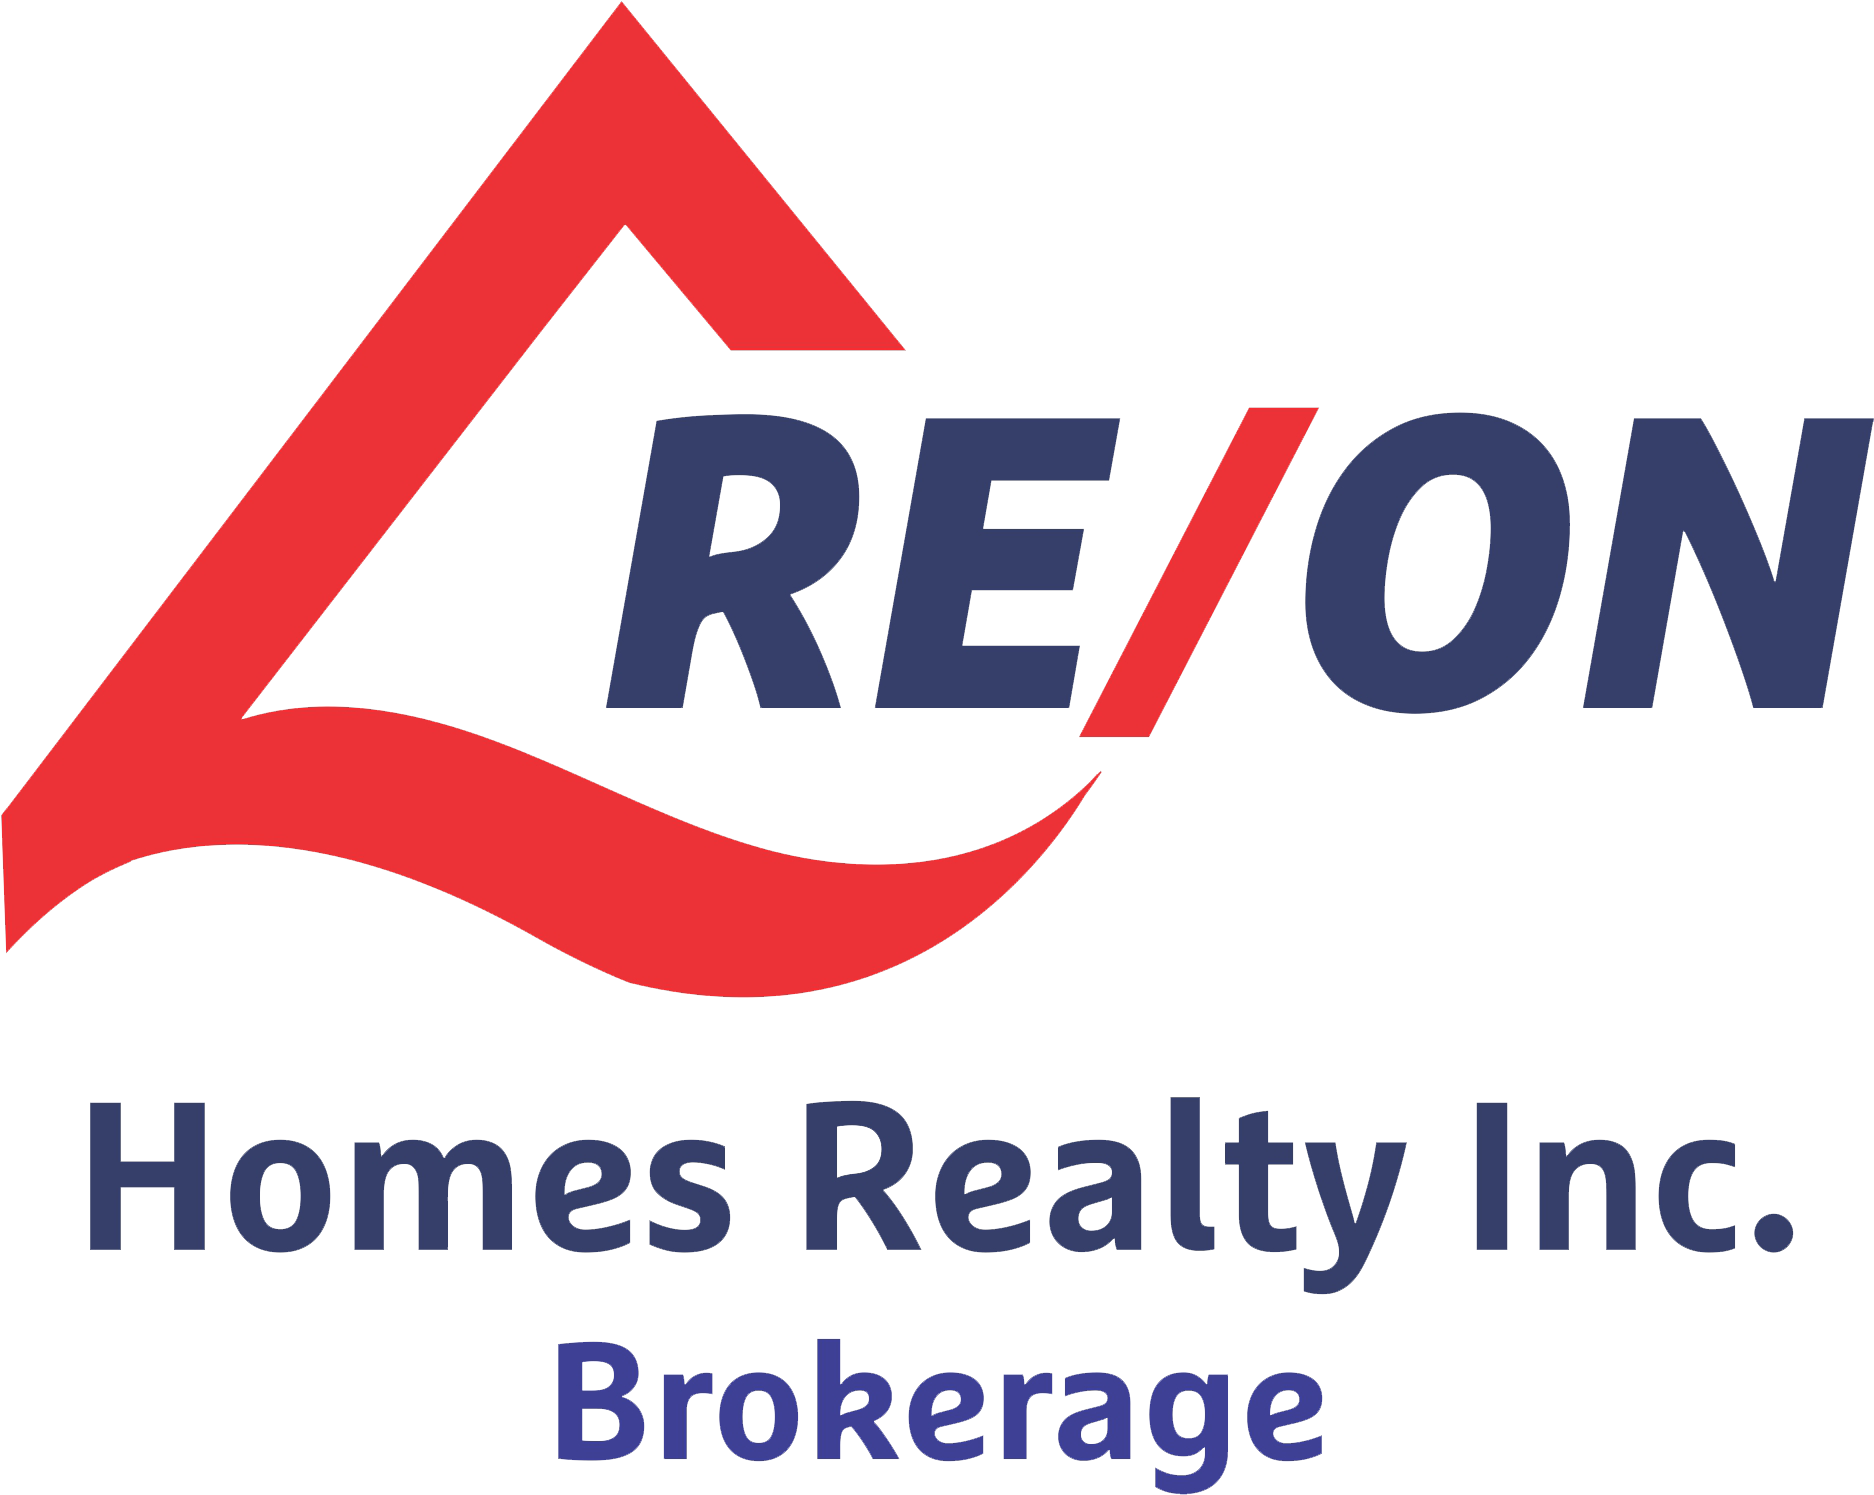 RE/ON Homes Realty Inc., Brokerage*